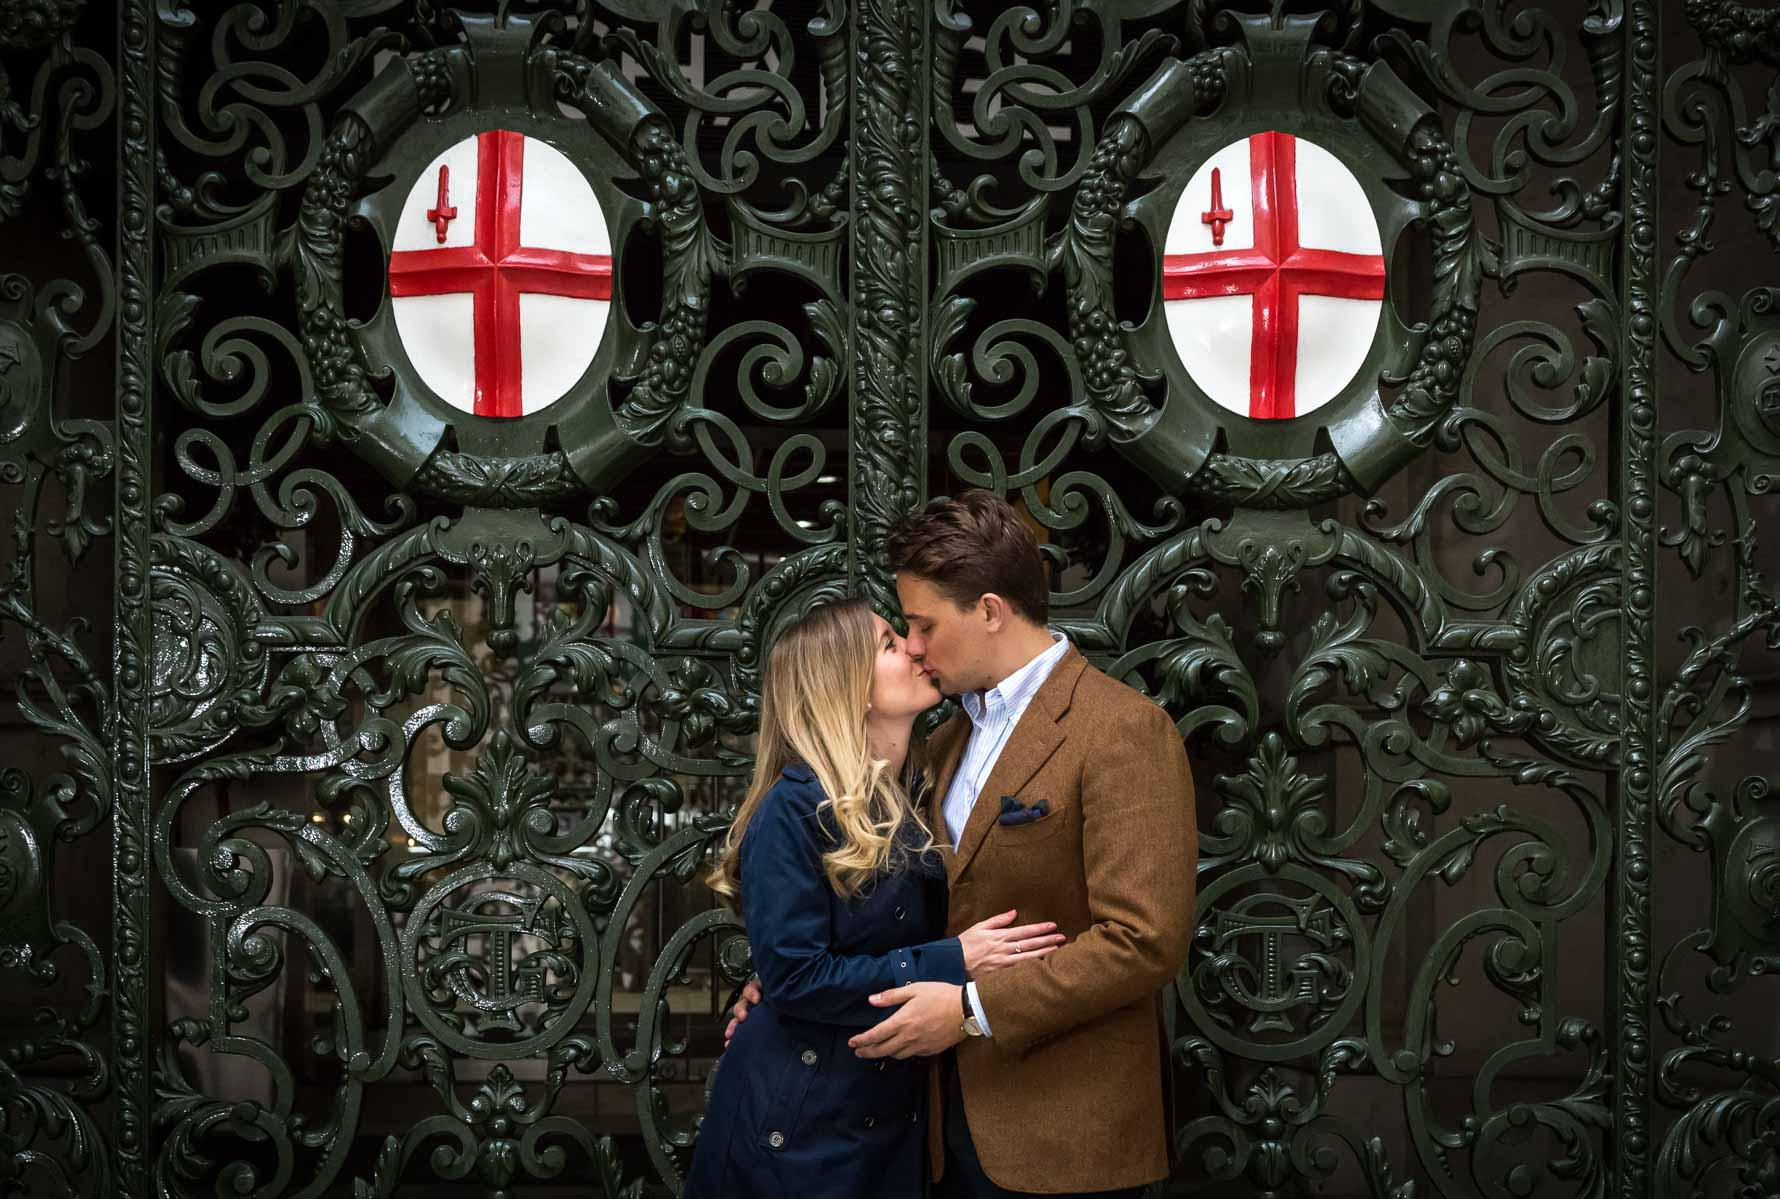 Kissing in front of the entrance gates of The Royal Exchange